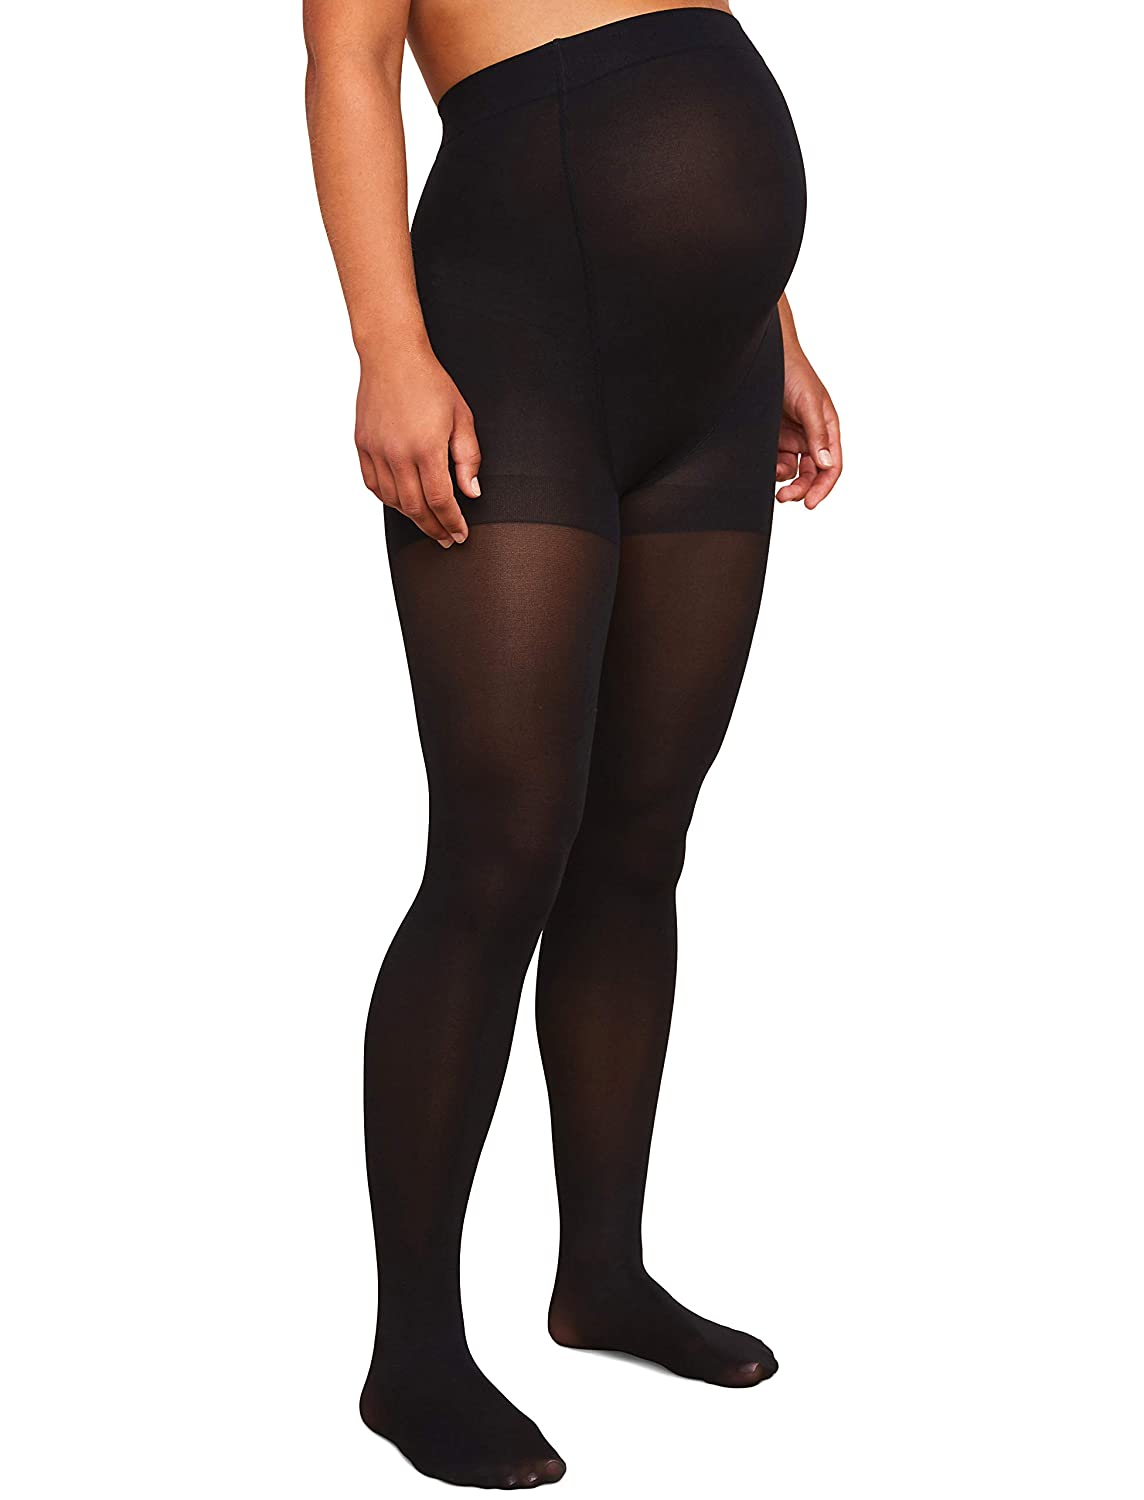 2ce3b1a39c655 Motherhood Maternity Women's Maternity Opaque Tights at Amazon Women's  Clothing store: